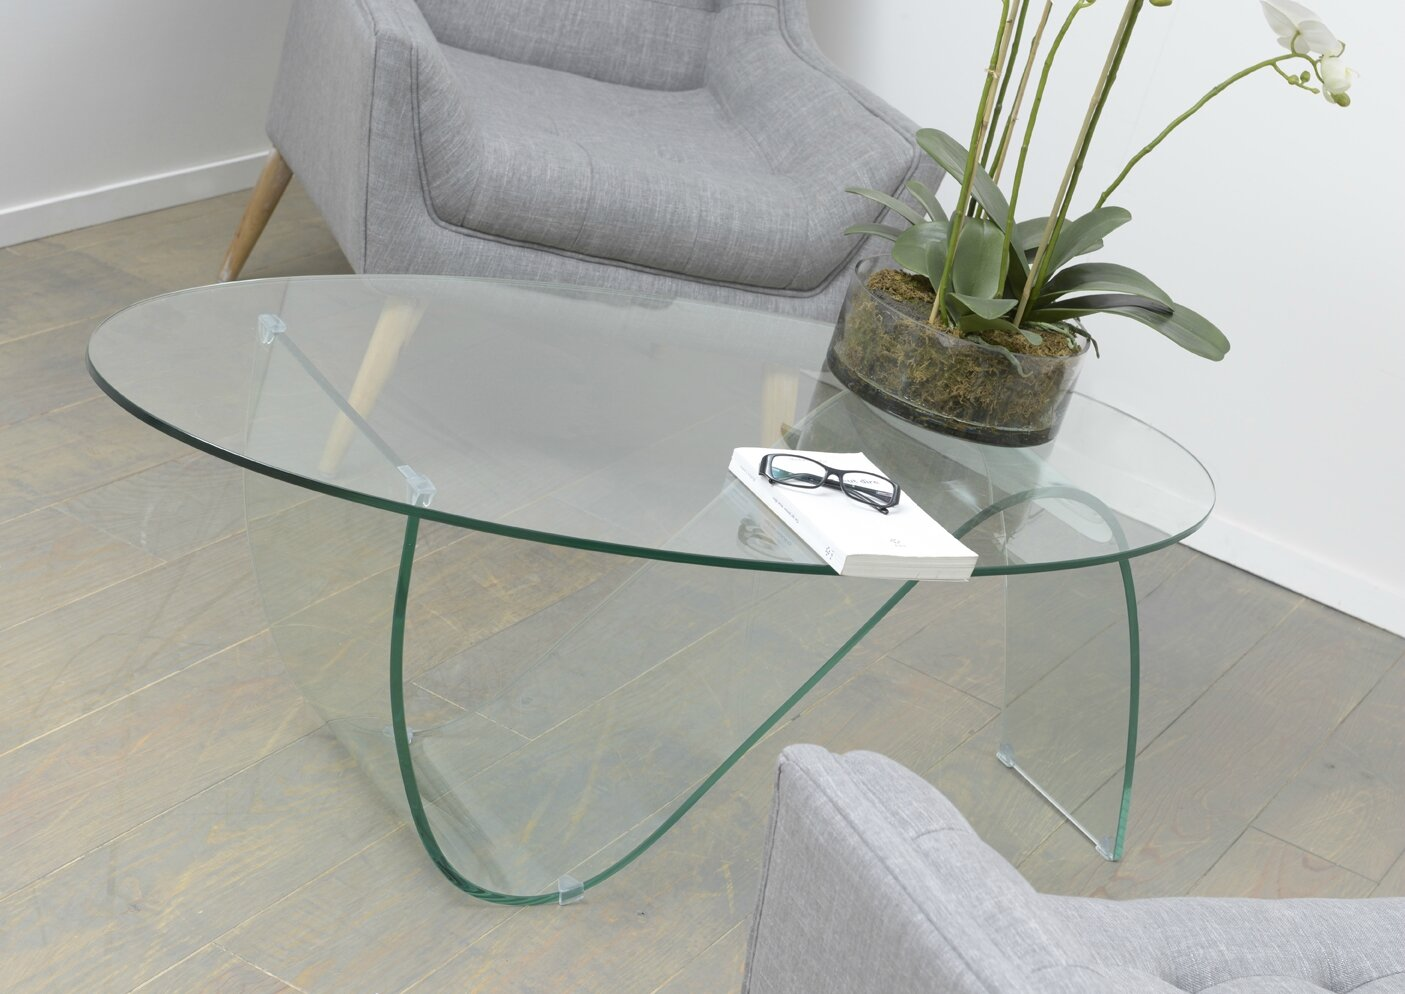 Table Basse Bois Verre Design Table Basse De Salon En Verre Design Table Basse Bois Massif